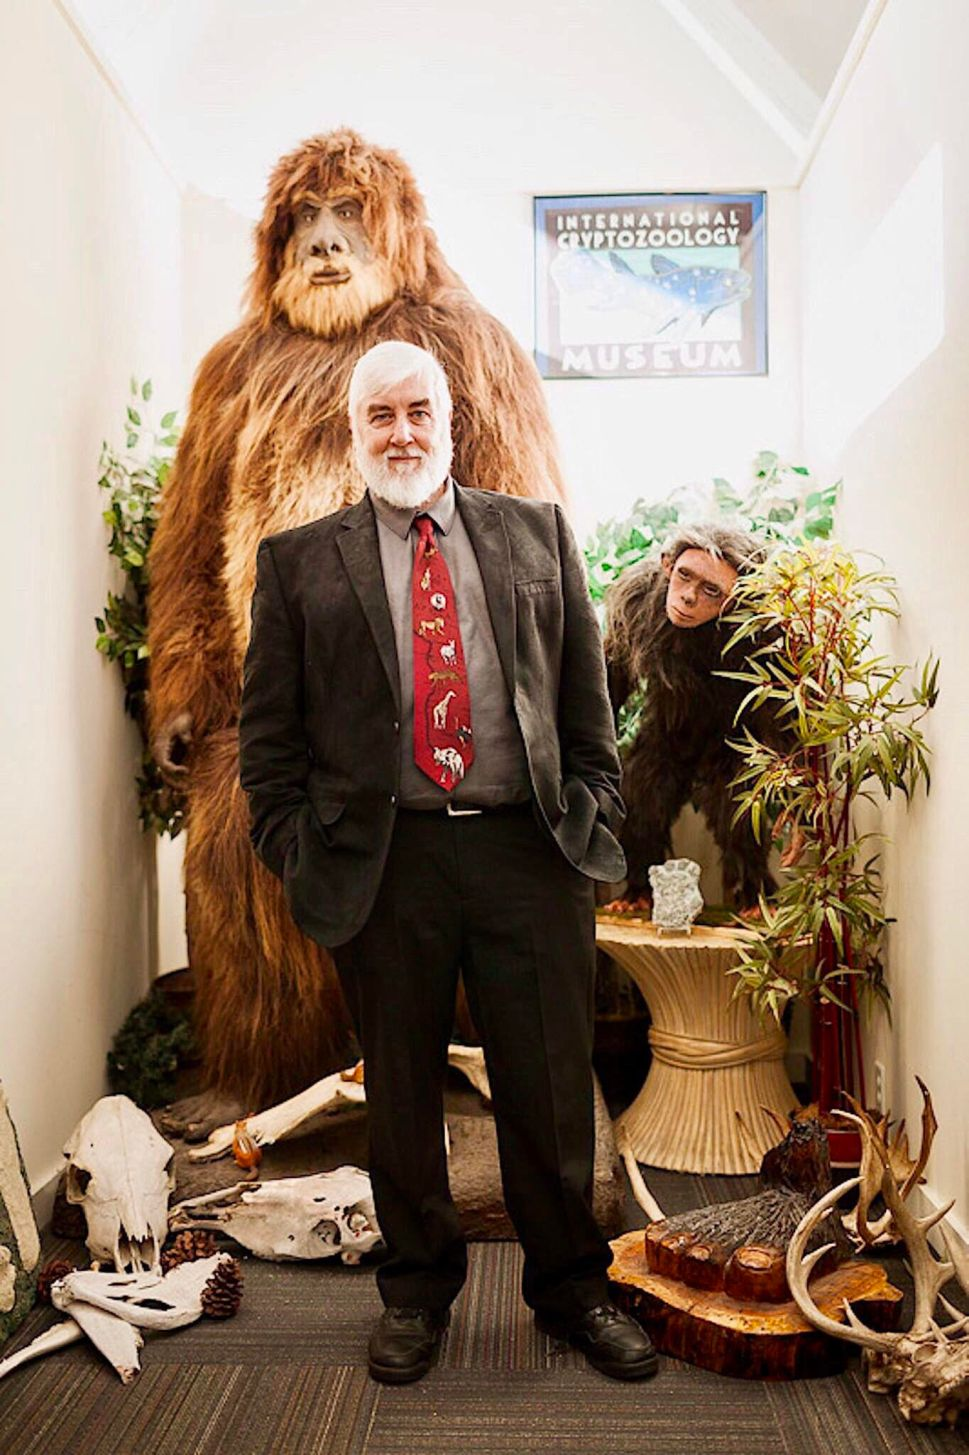 Coleman is also the Director of the International Cryptozoology Museum in Portland, Maine.